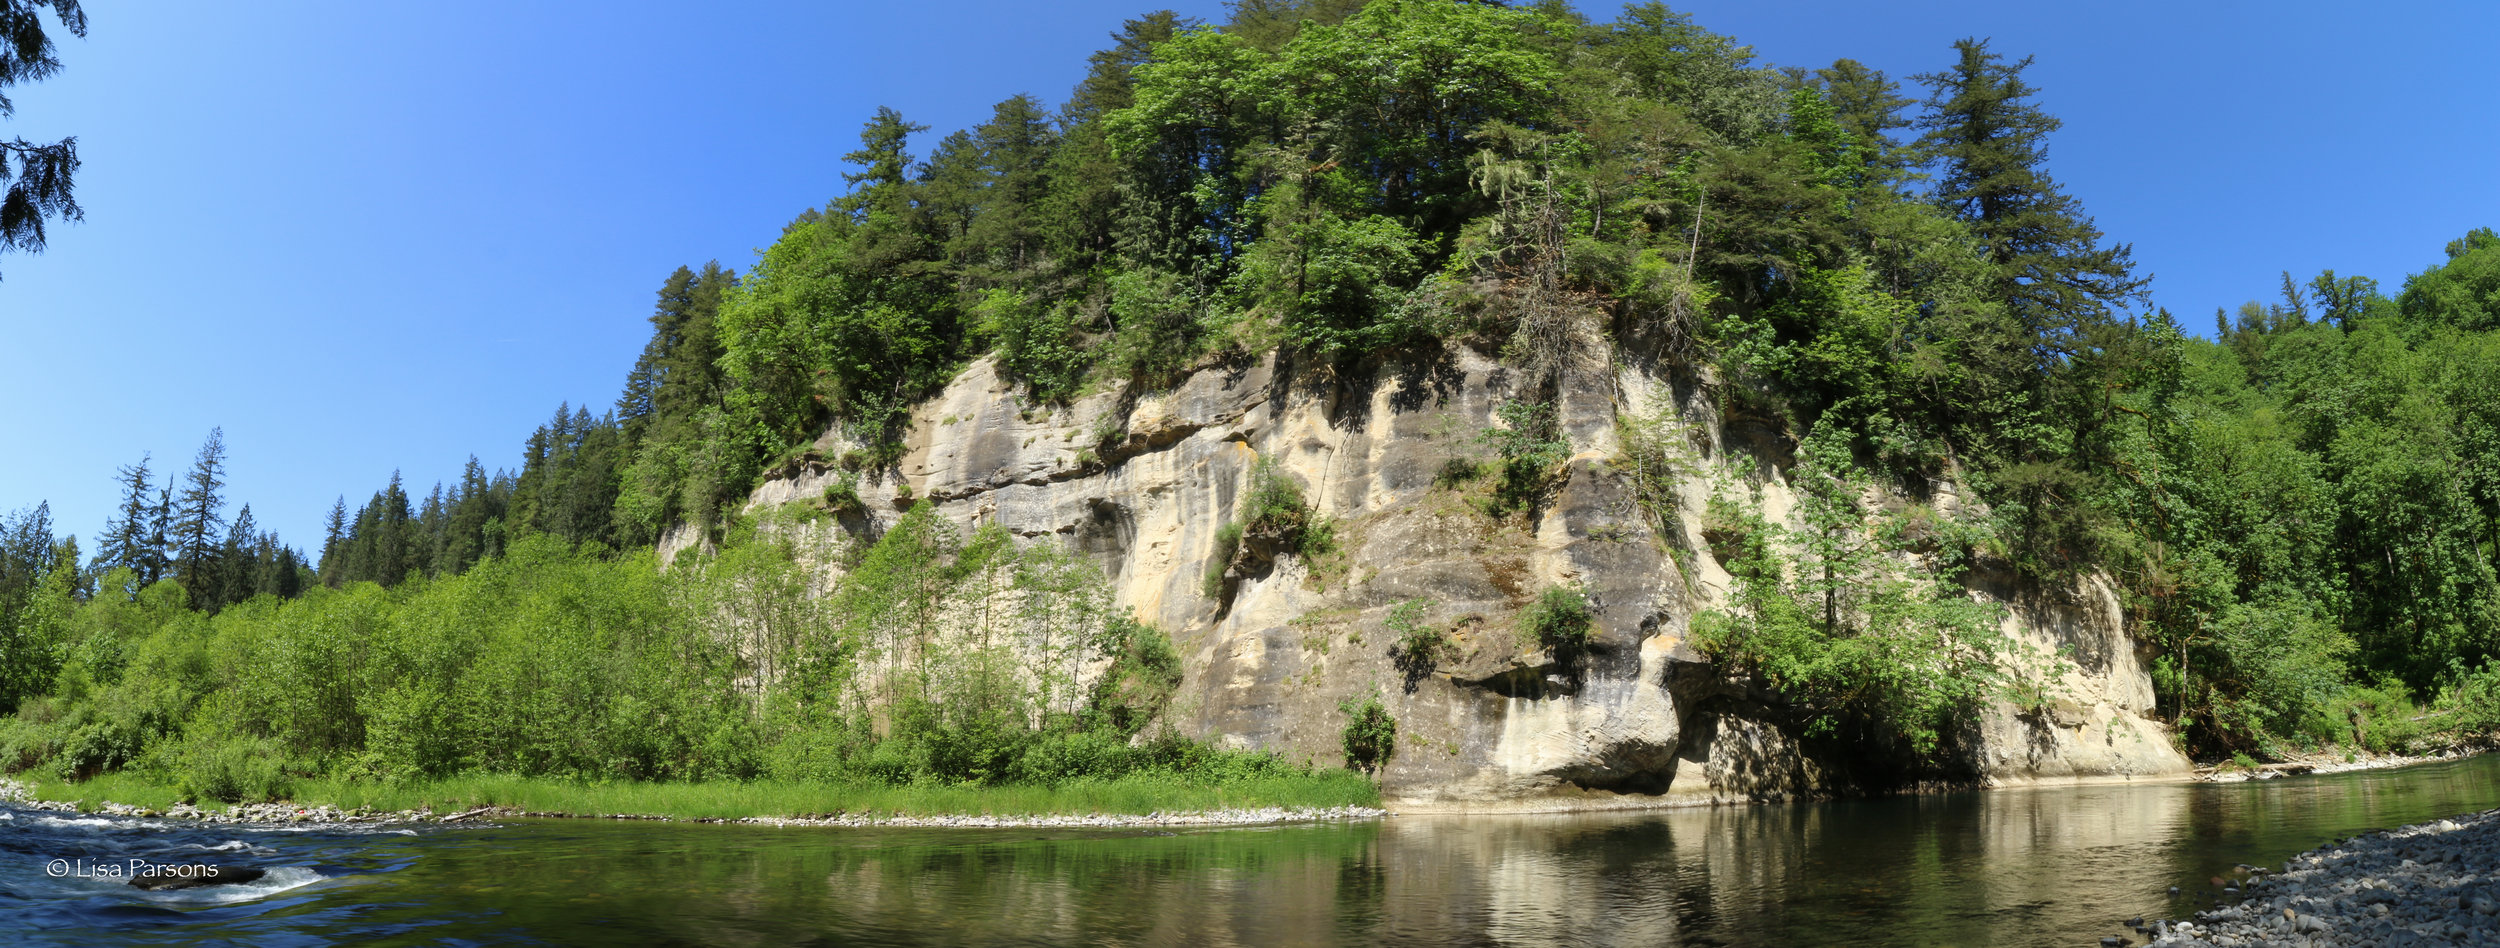 Panorama of Hanging Gardens sandstone cliffs